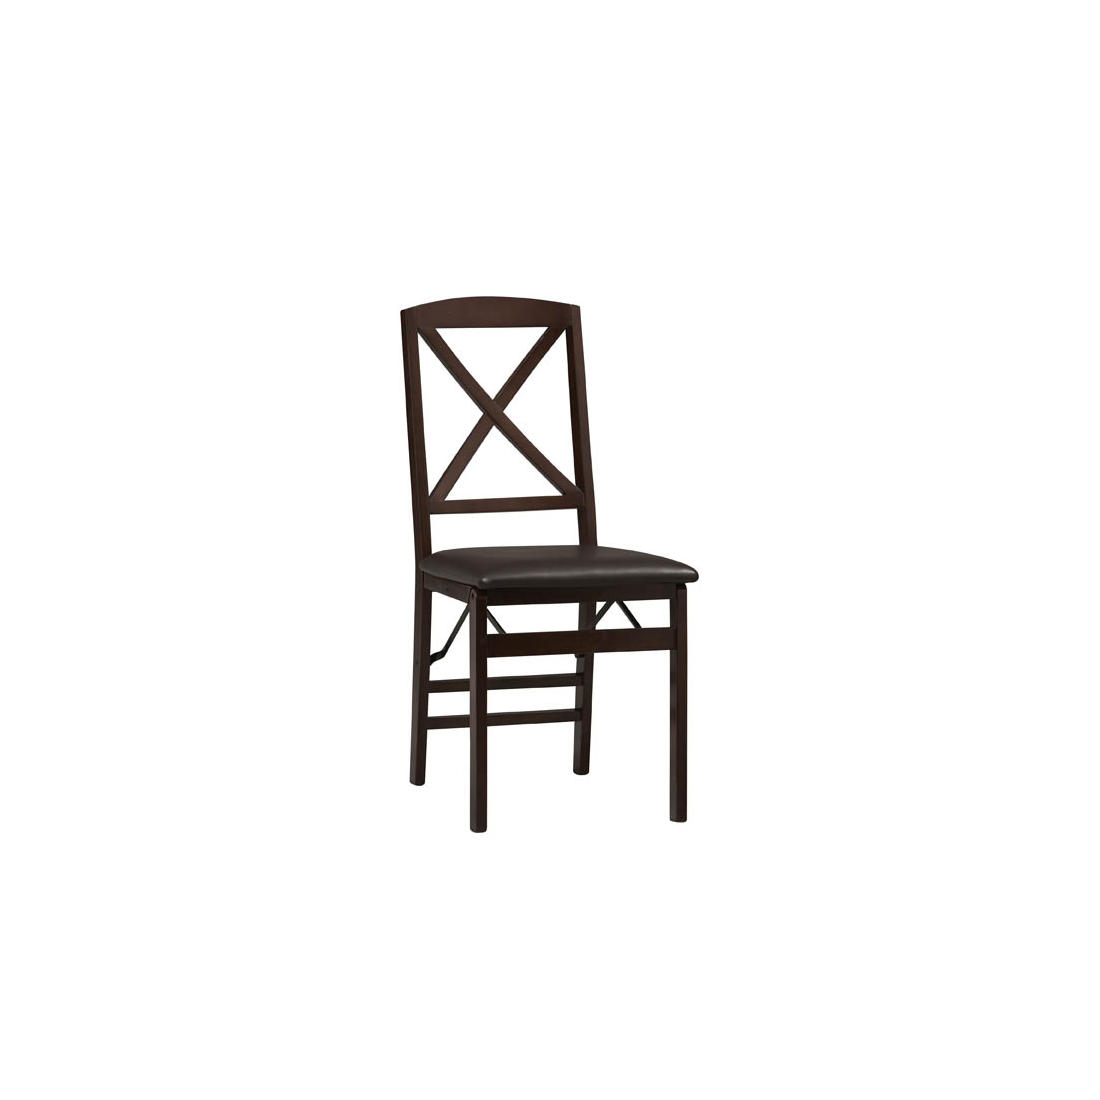 Phenomenal Linon Triena 18 X Back Folding Chairs 2 Pk Espresso Squirreltailoven Fun Painted Chair Ideas Images Squirreltailovenorg